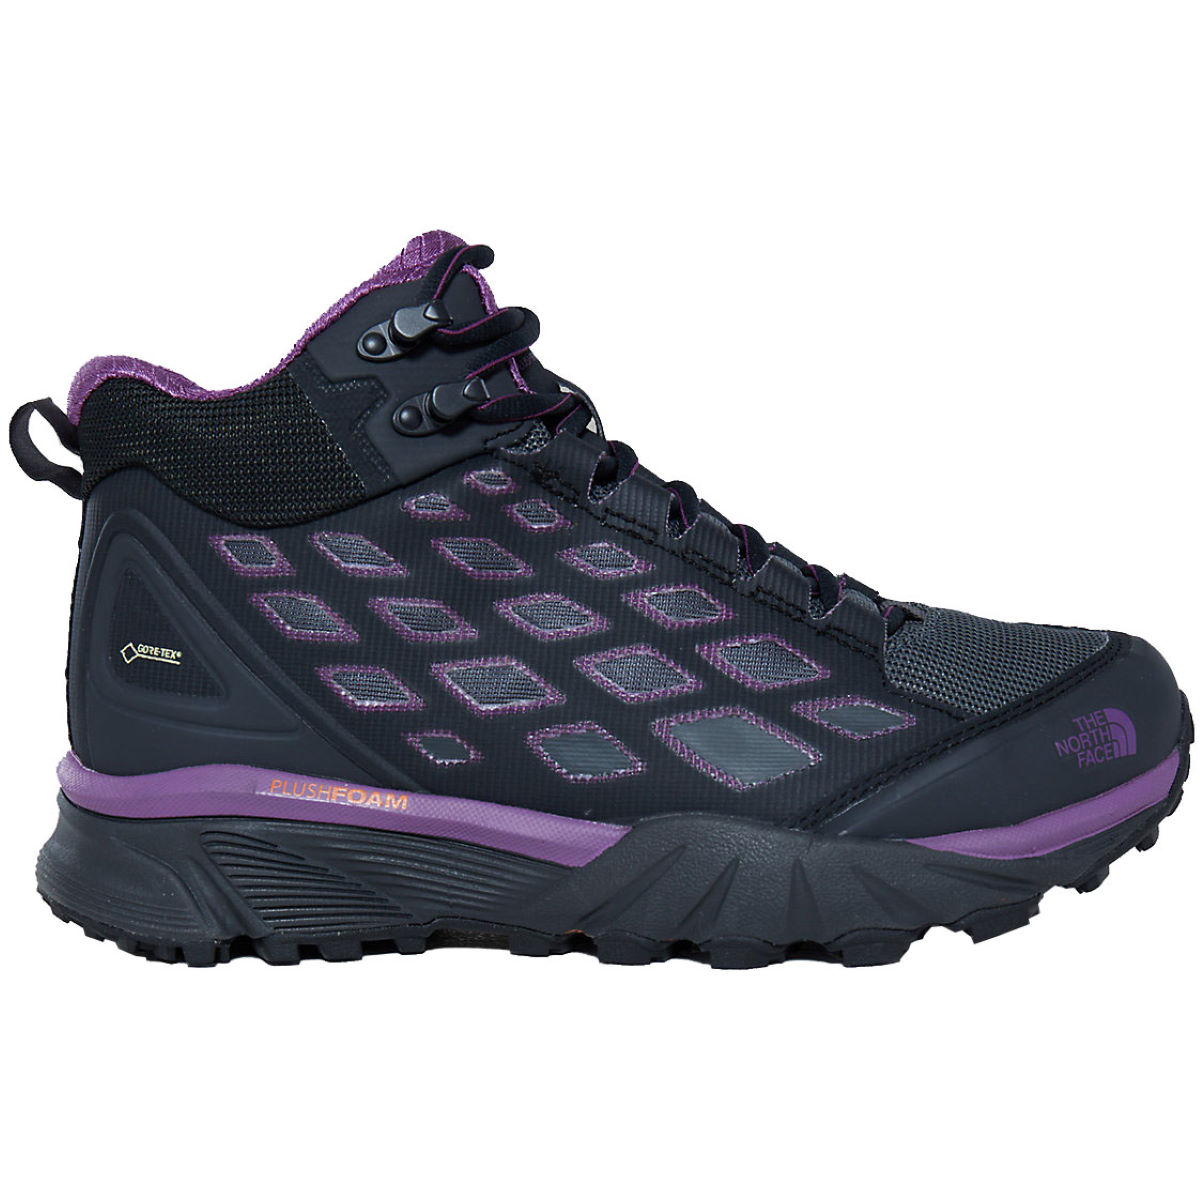 Chaussures Femme The North Face W ENDURUS HKE MD GTX - 5